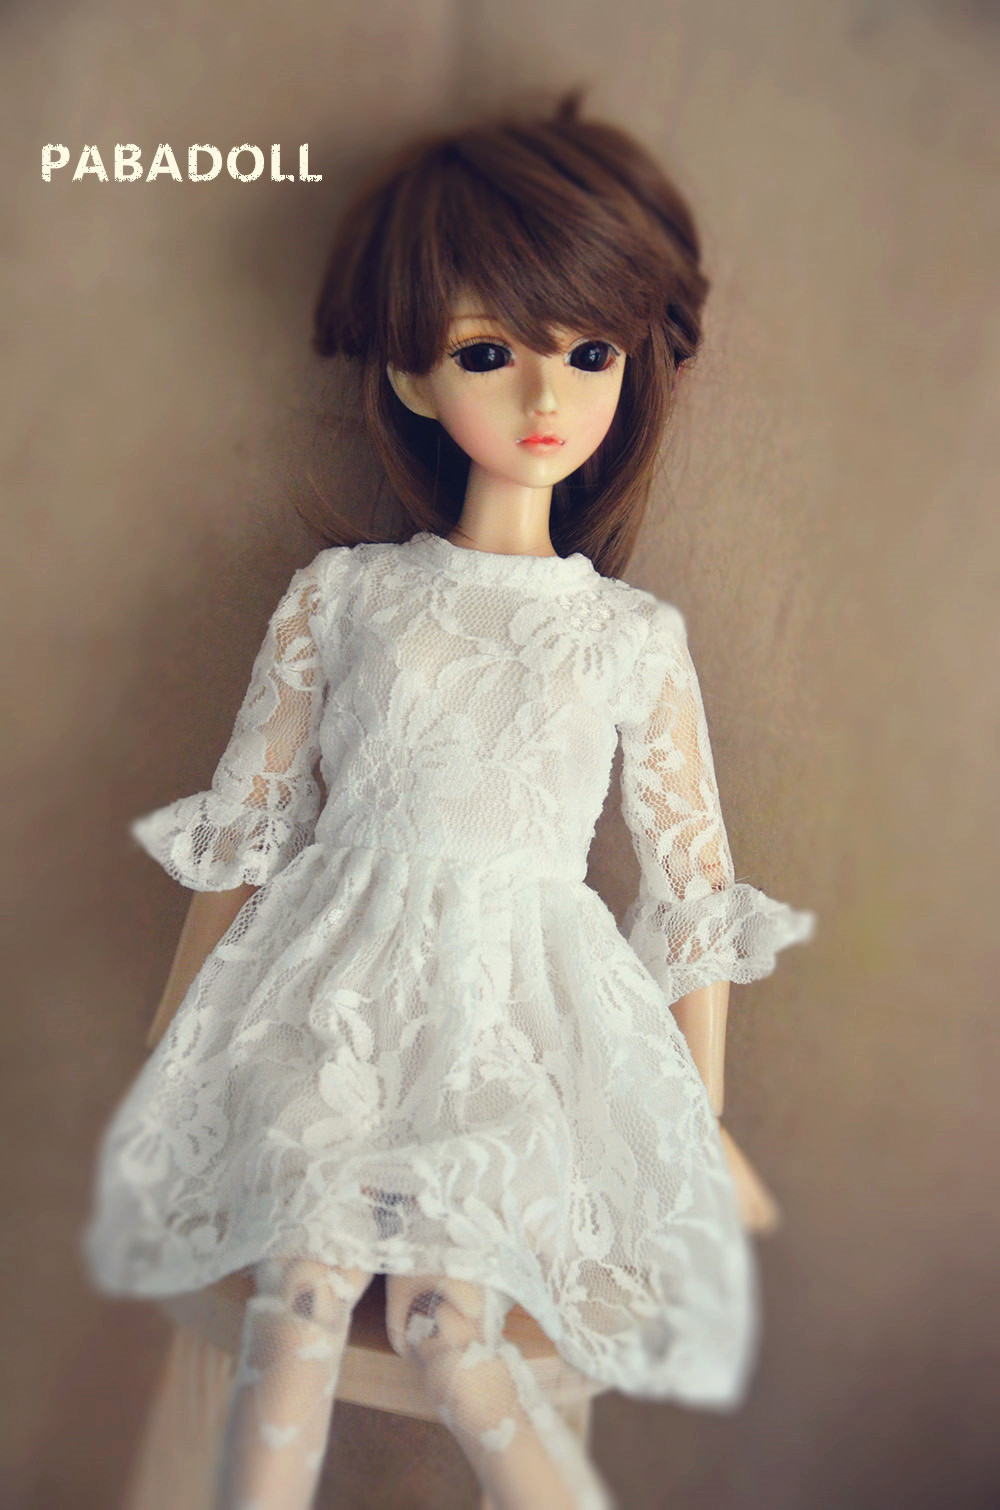 Pretty White Lace Dress For BJD Doll 1/6 YOSD 1/4 MSD,1/3 SD16 DD Luts DOD AS DZ Doll Clothes CWB96 free match stockings for bjd 1 6 1 4 1 3 sd16 dd sd luts dz as dod doll clothes accessories sk1